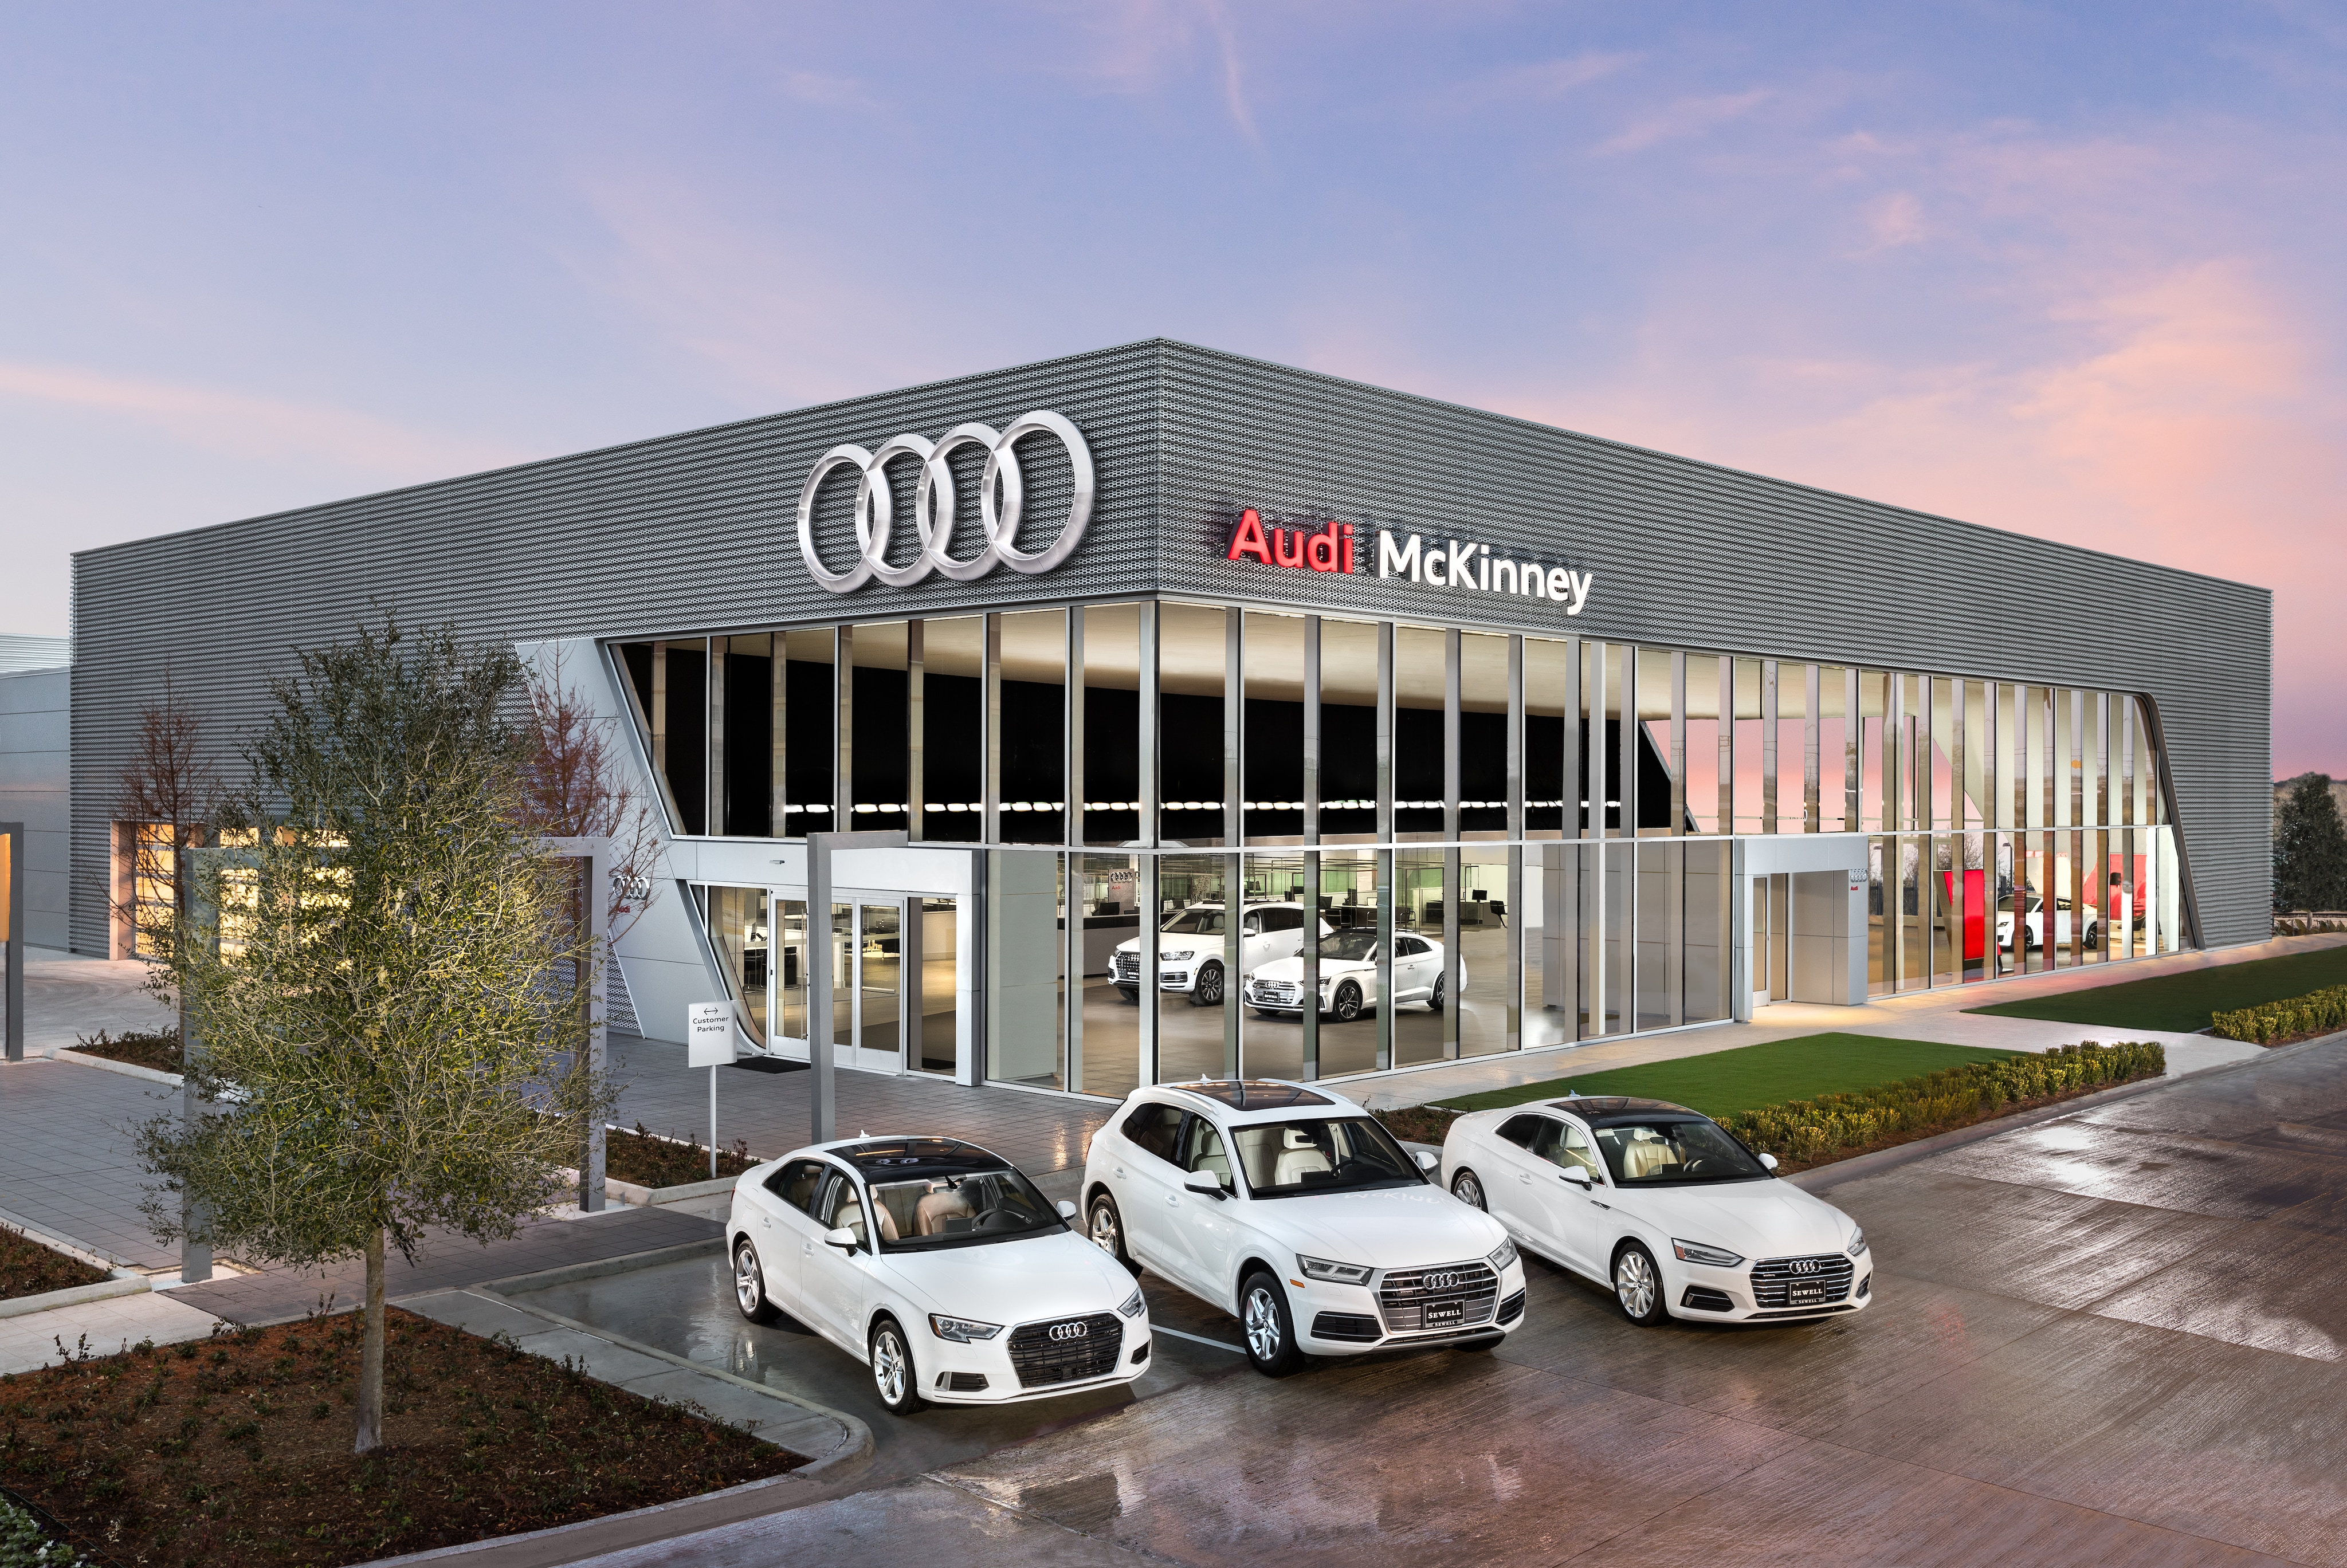 your maintain richmond making dealer of care it at we committed for more you audi parts are to convenient service